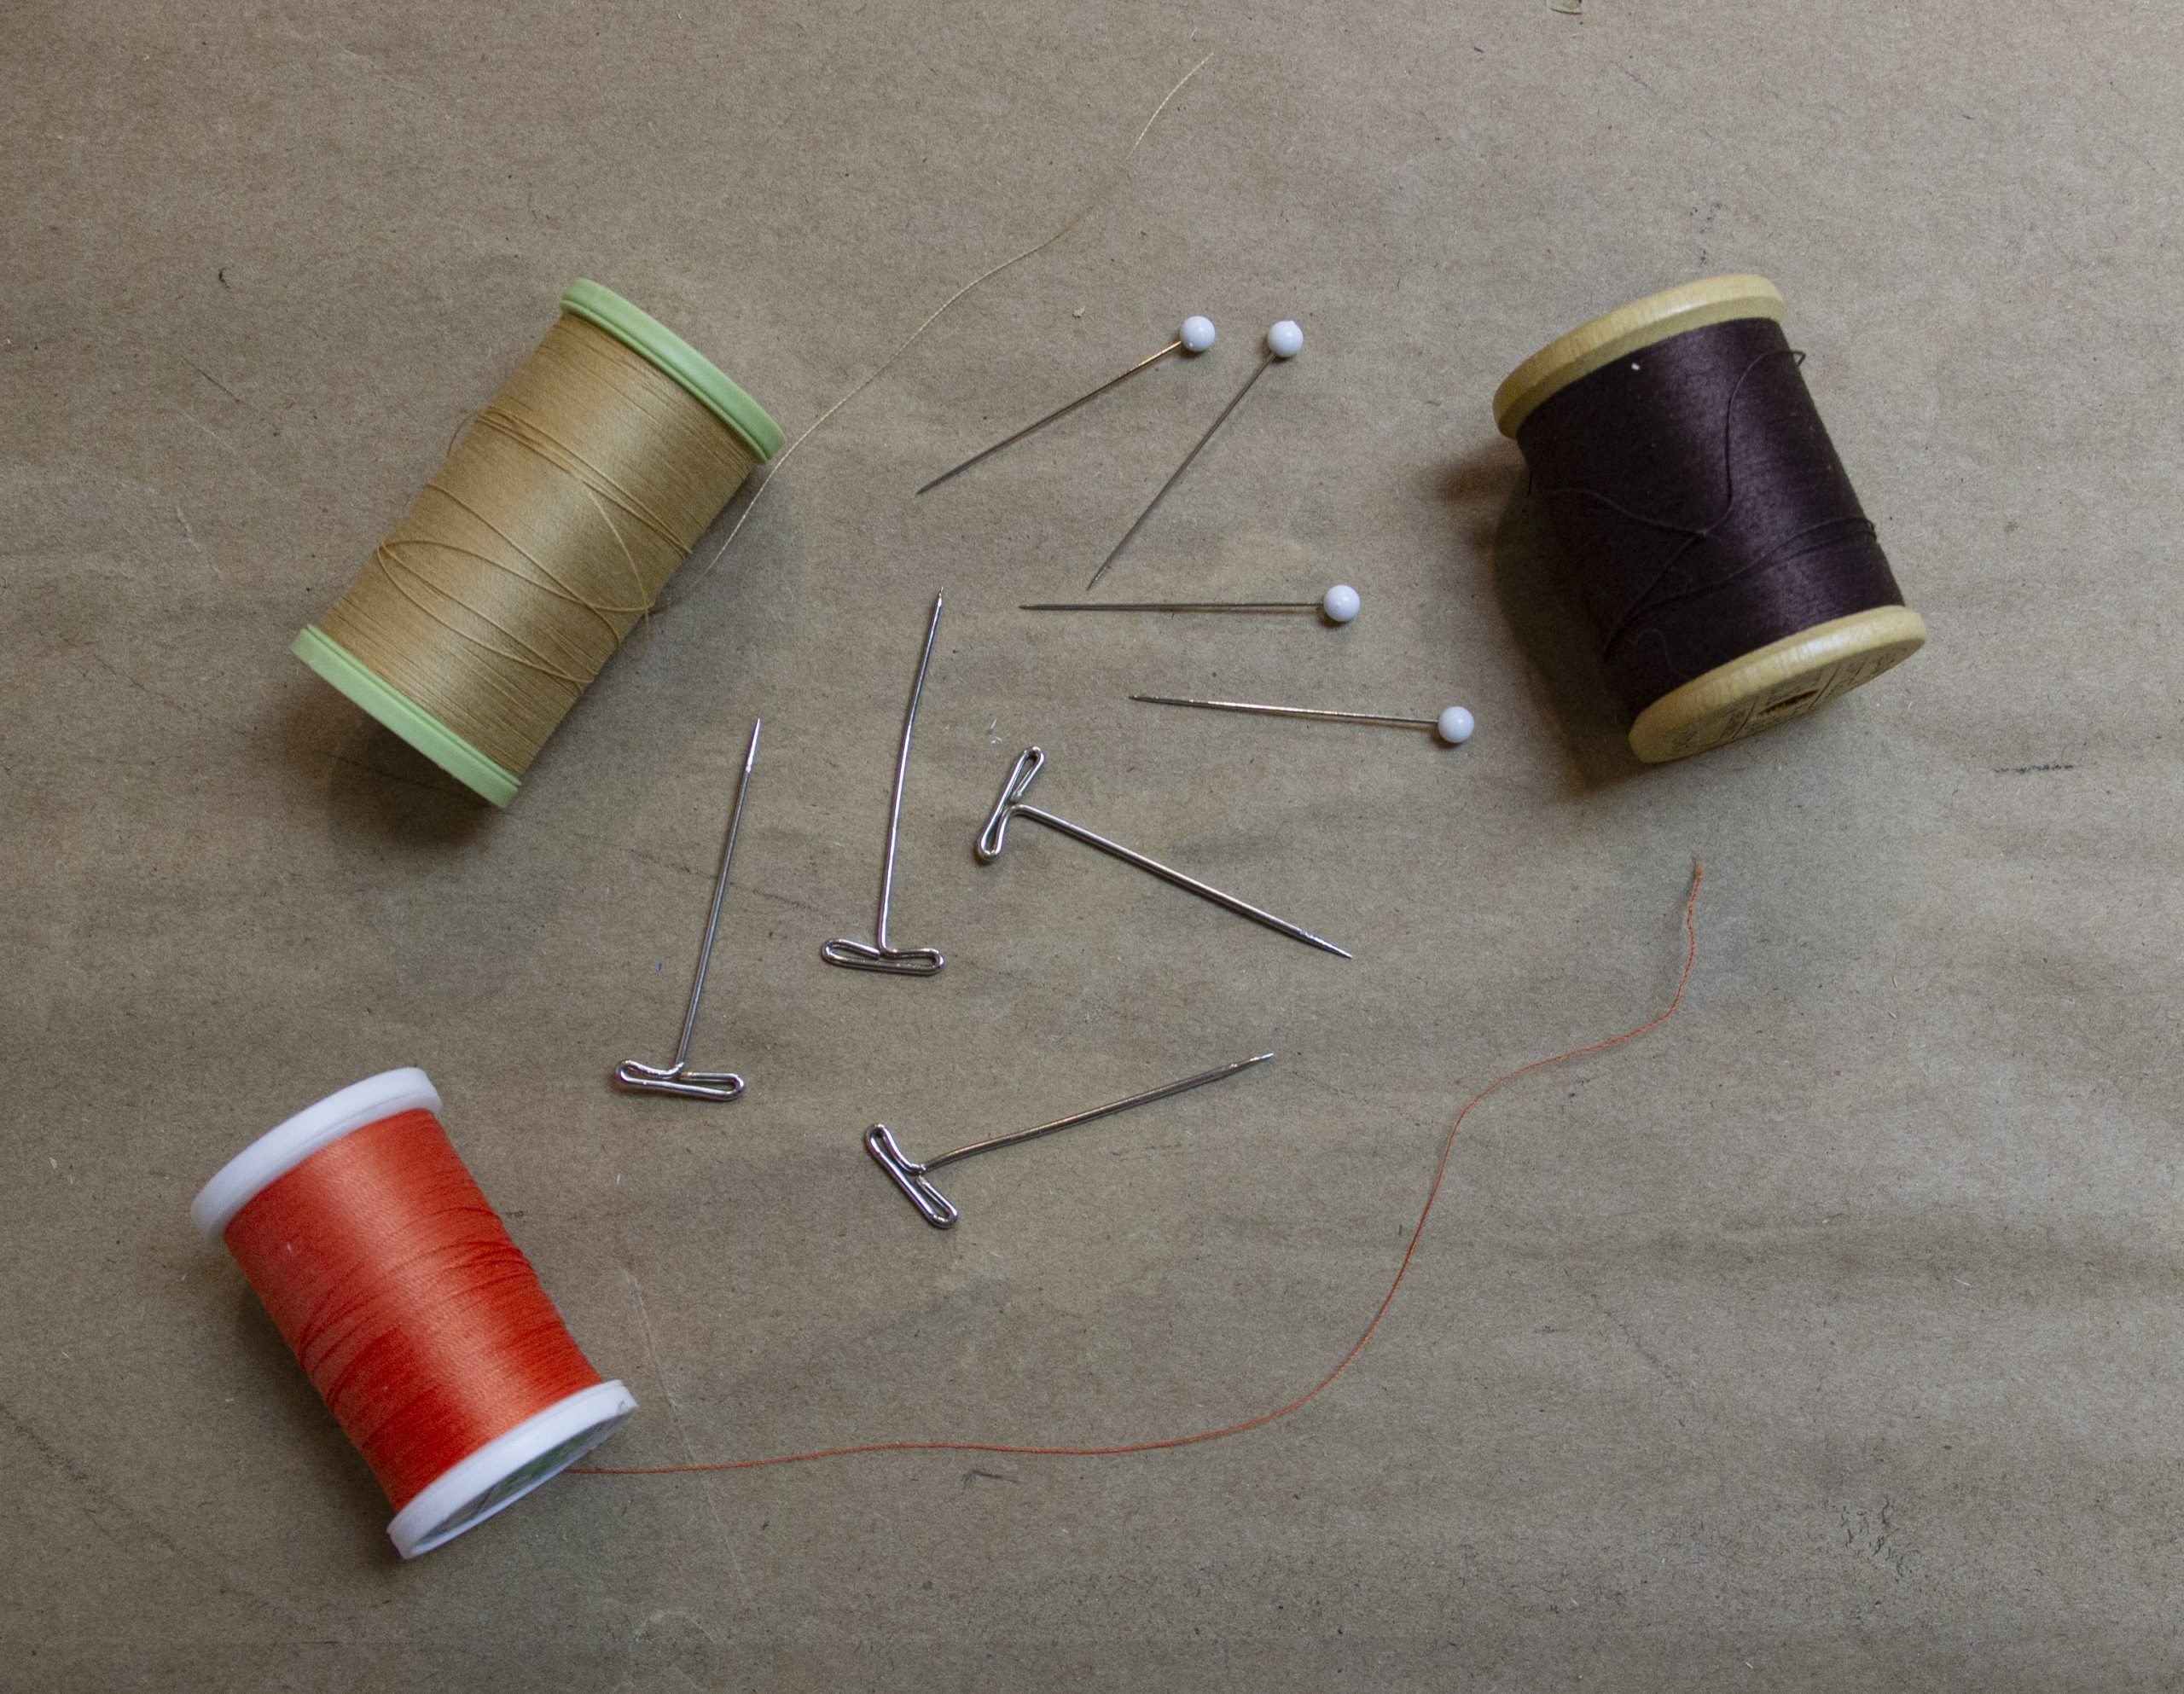 Sewing kit & Straight Pins